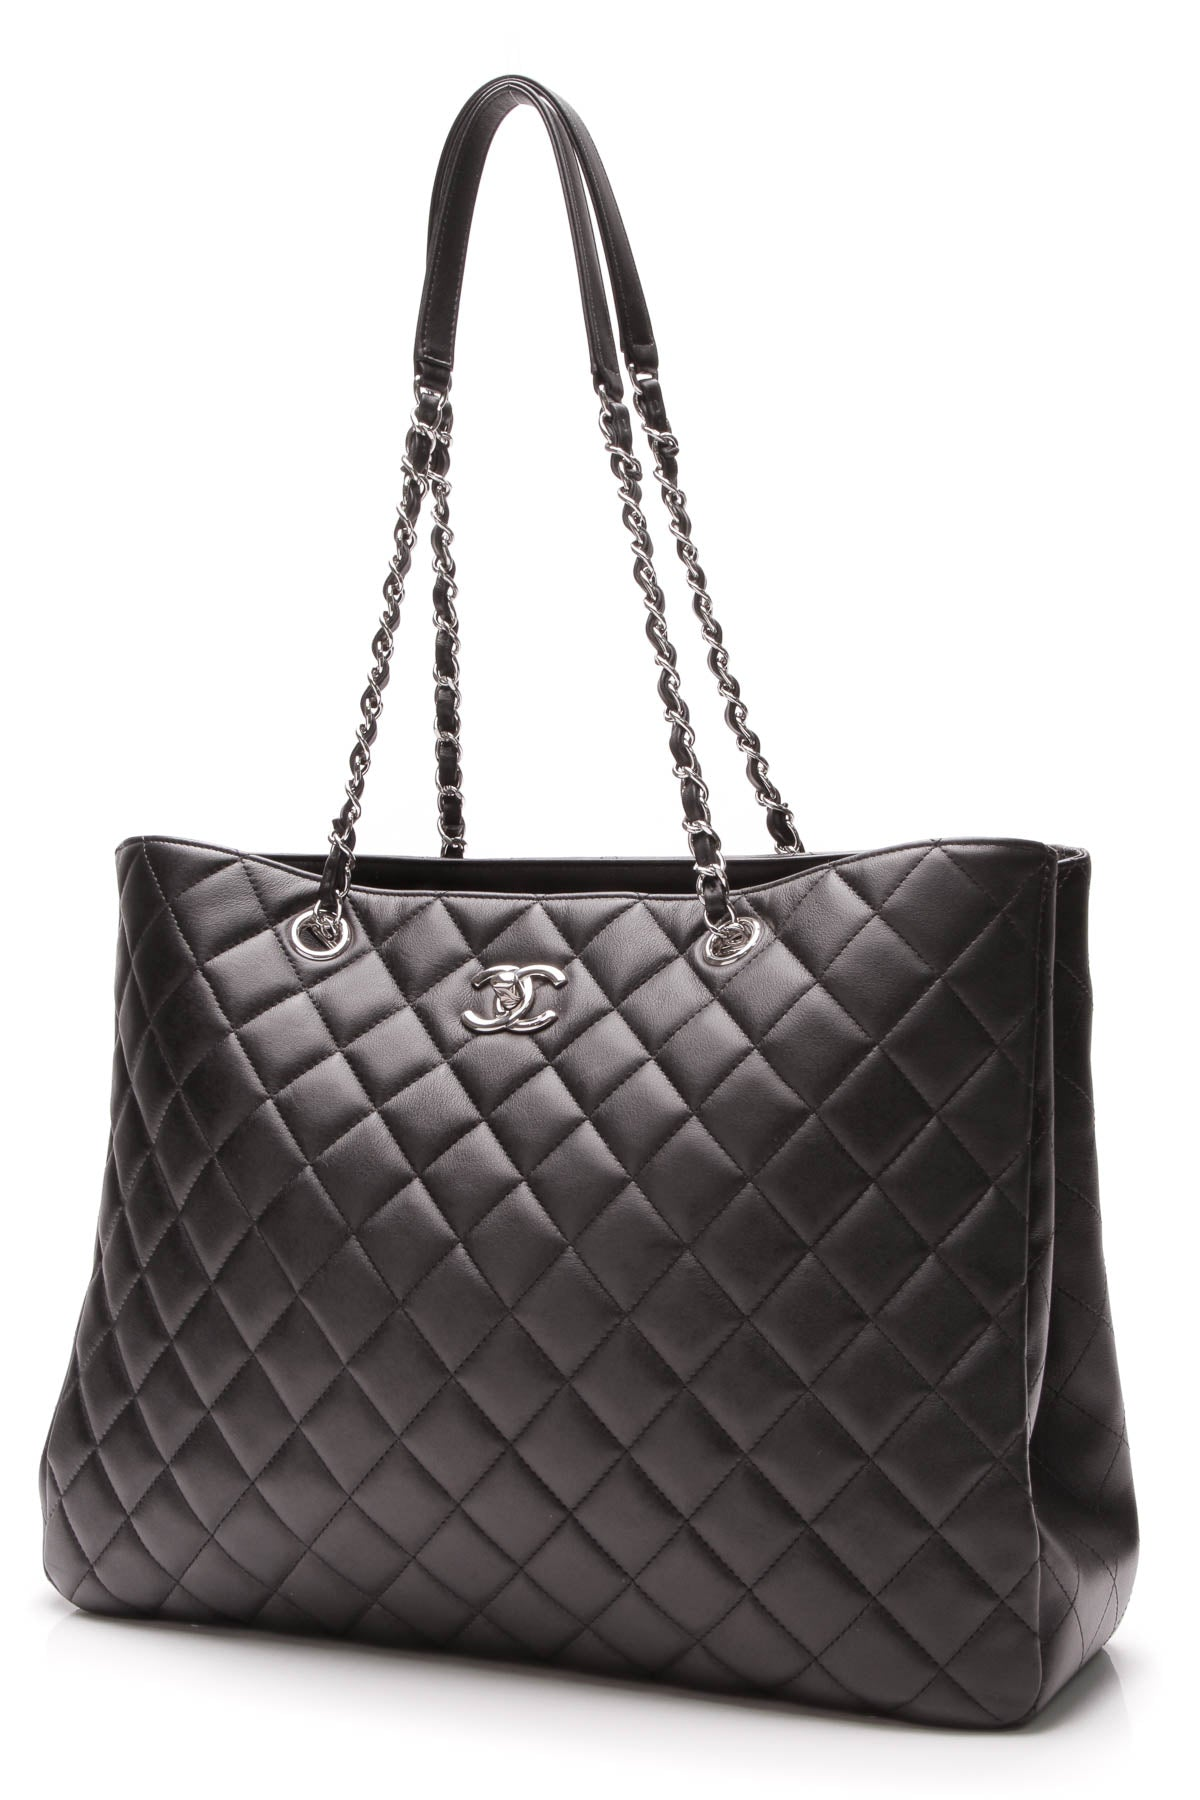 8fd2afb90 Chanel Large Classic Tote Bag - Black Lambskin – Couture USA